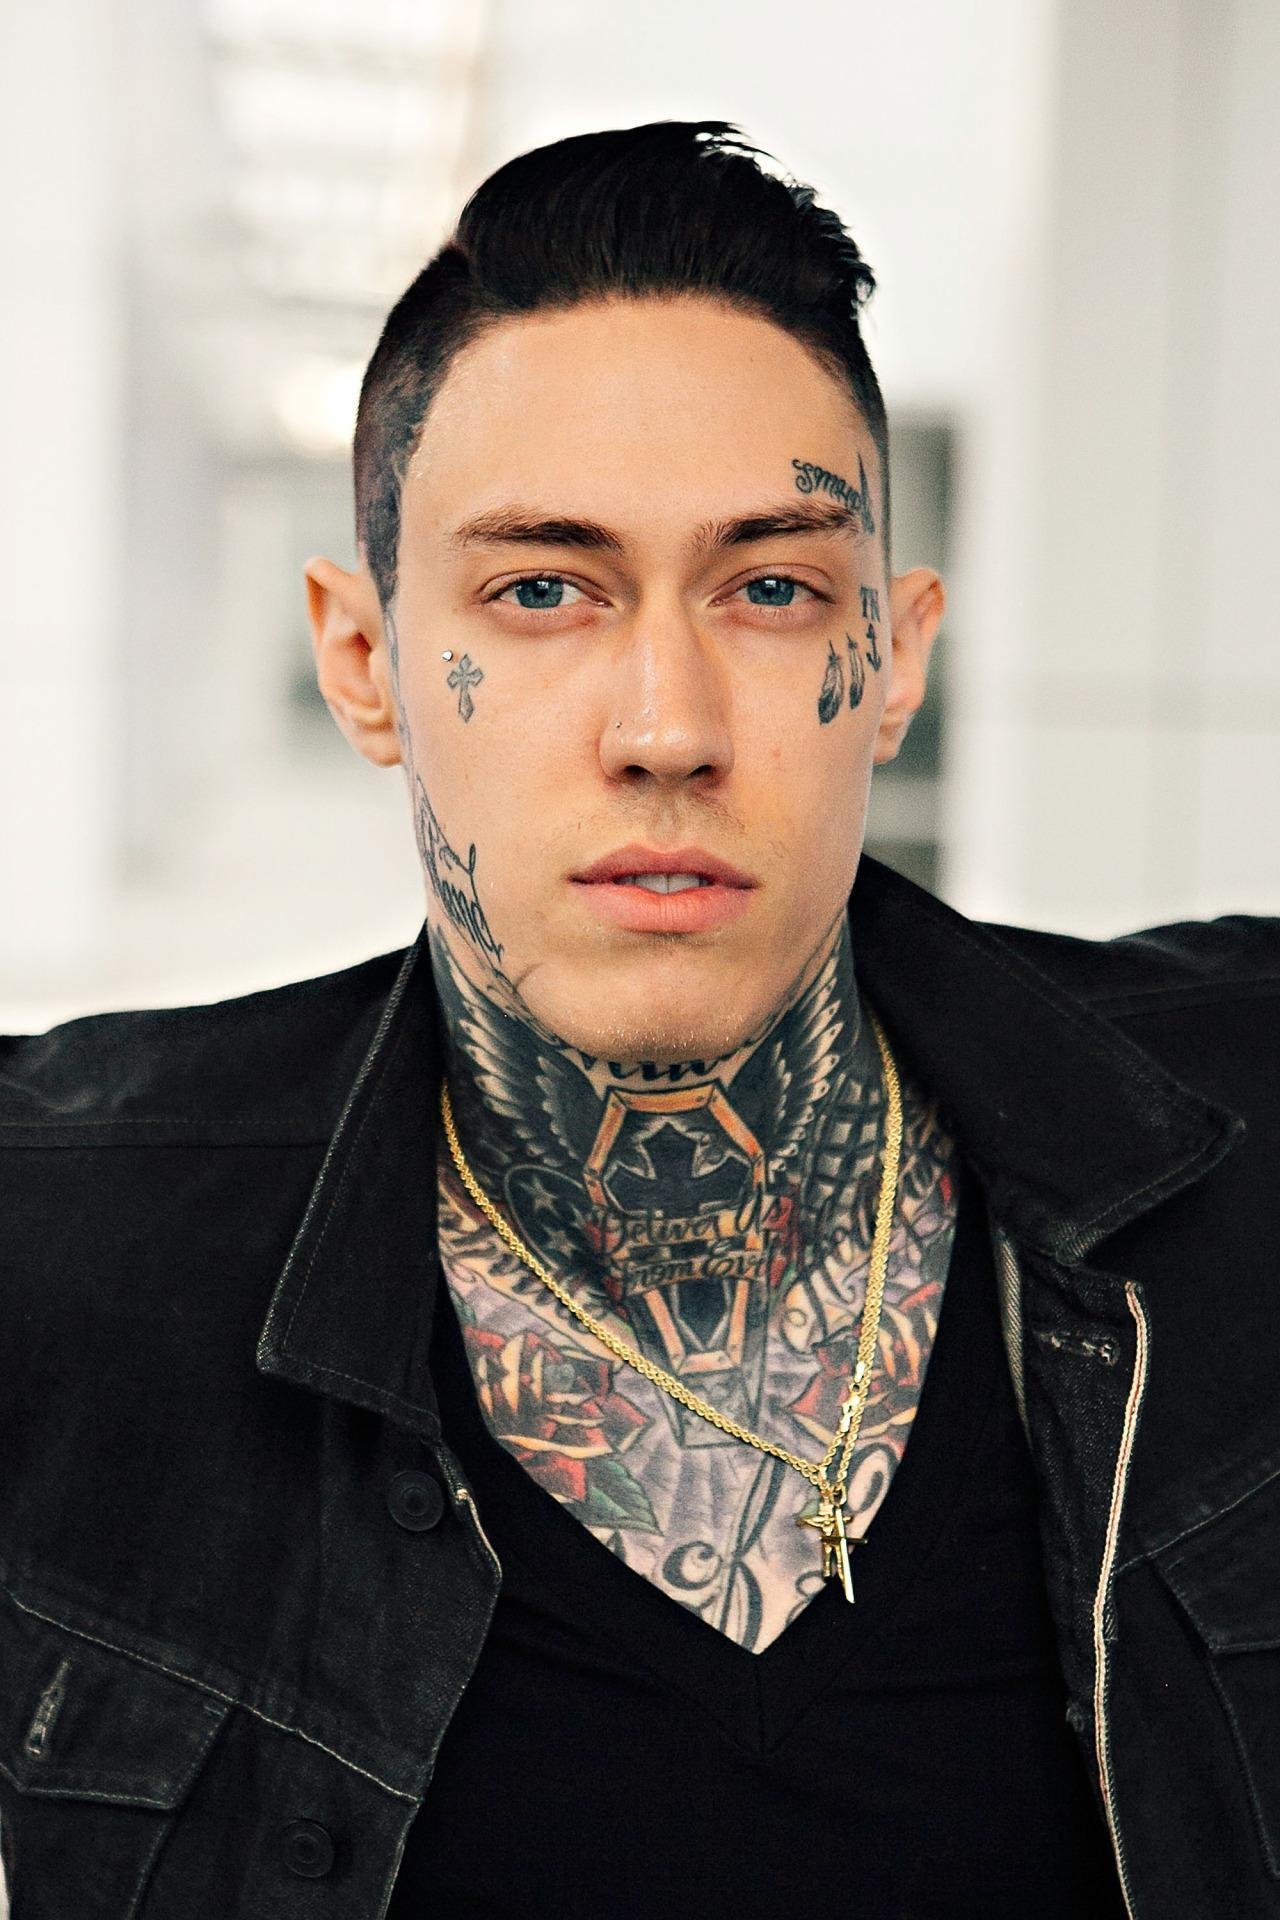 U Uu Uu >> Trace Cyrus Shows Off His Nearly Fully Tattooed Body With Shirtless Selfie